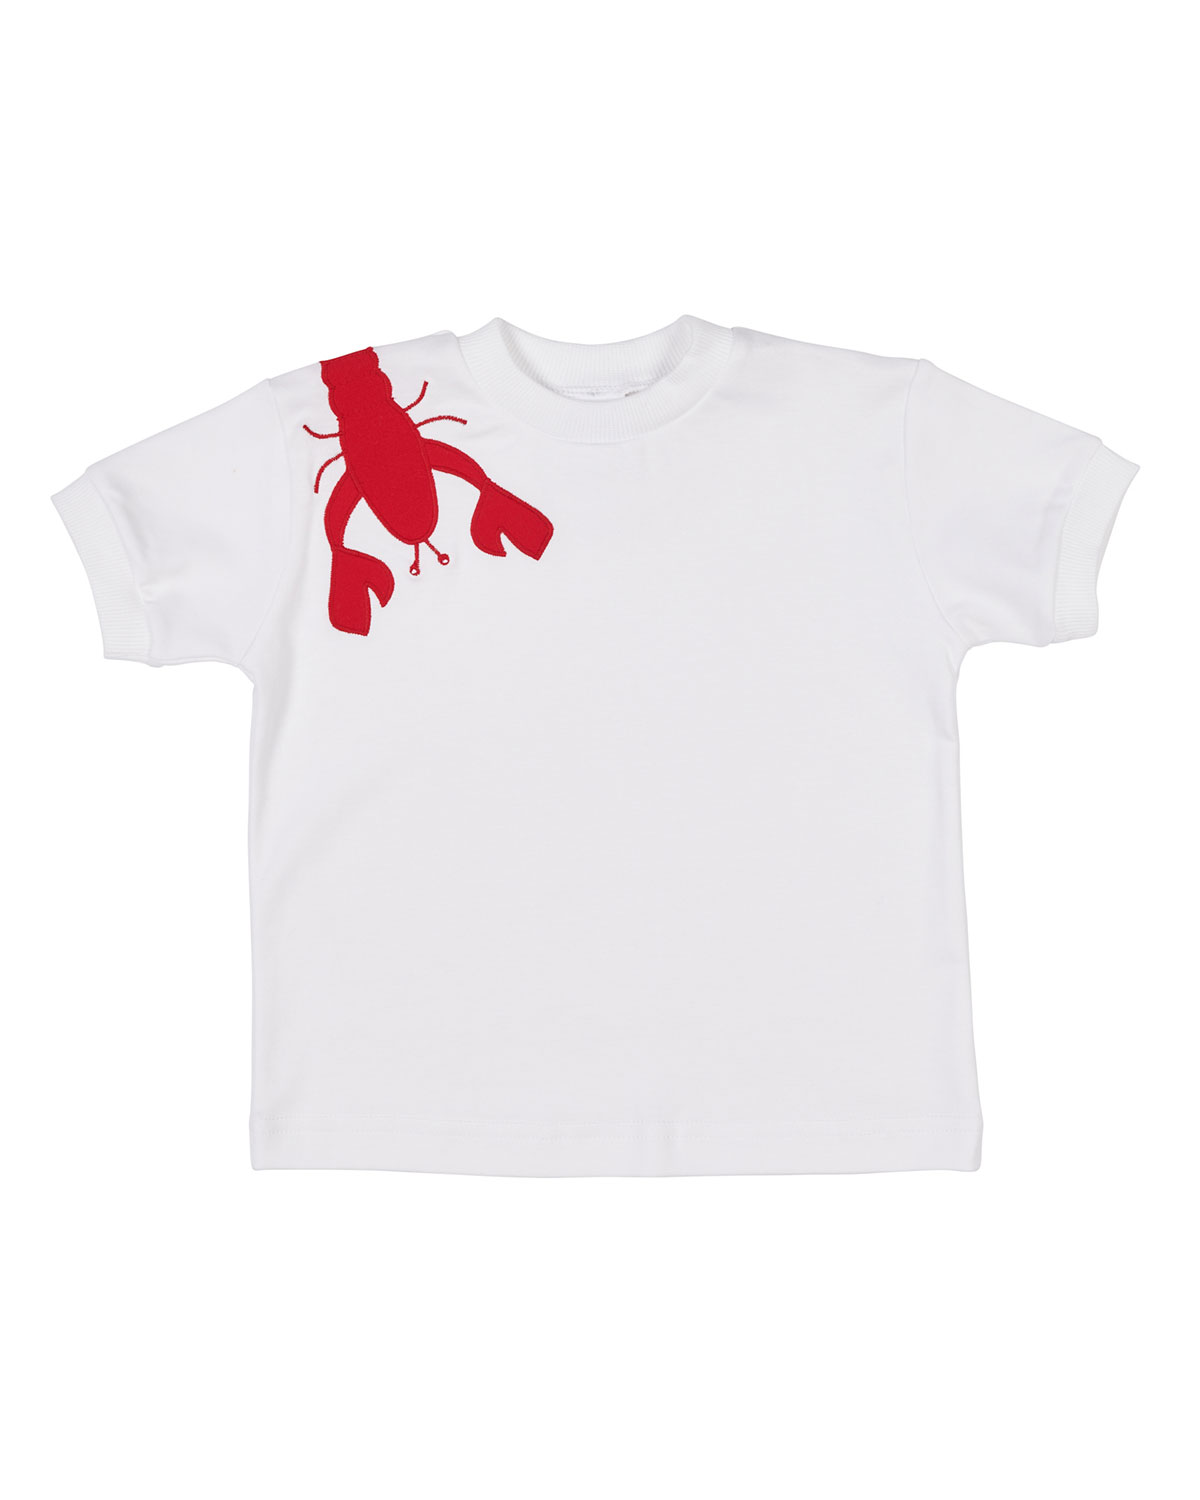 FLORENCE EISEMAN Short-Sleeve Pima Cotton T-Shirt W/ Lobster Applique, Size 2-4 in White